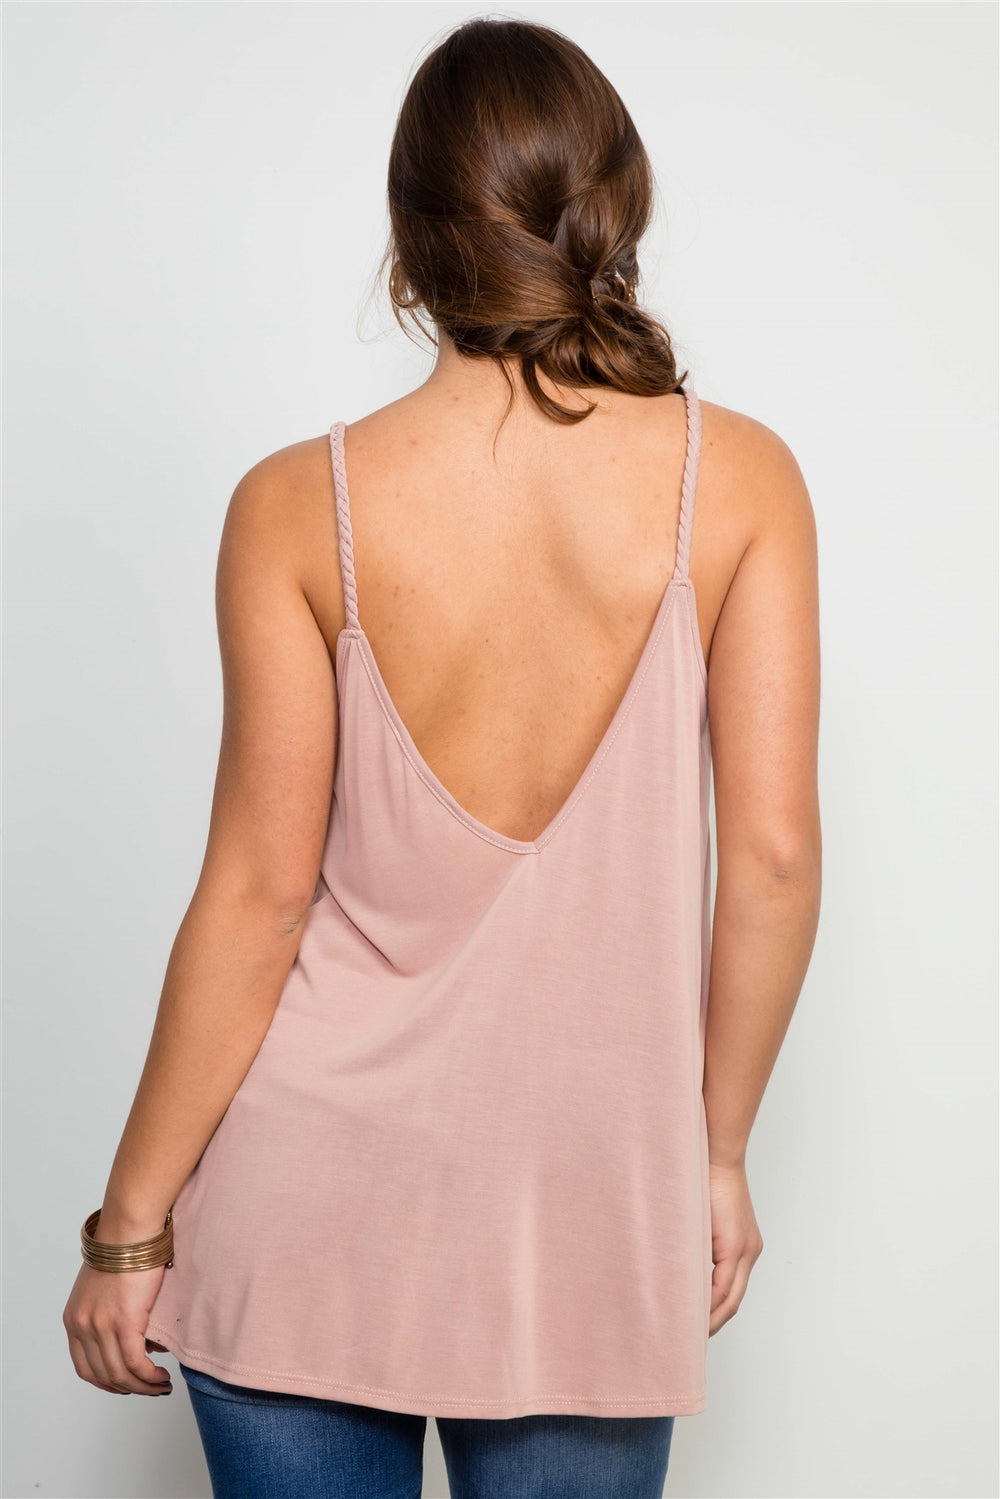 Mauve Soft Solid Braided Strap Tank Top - Siin Bees